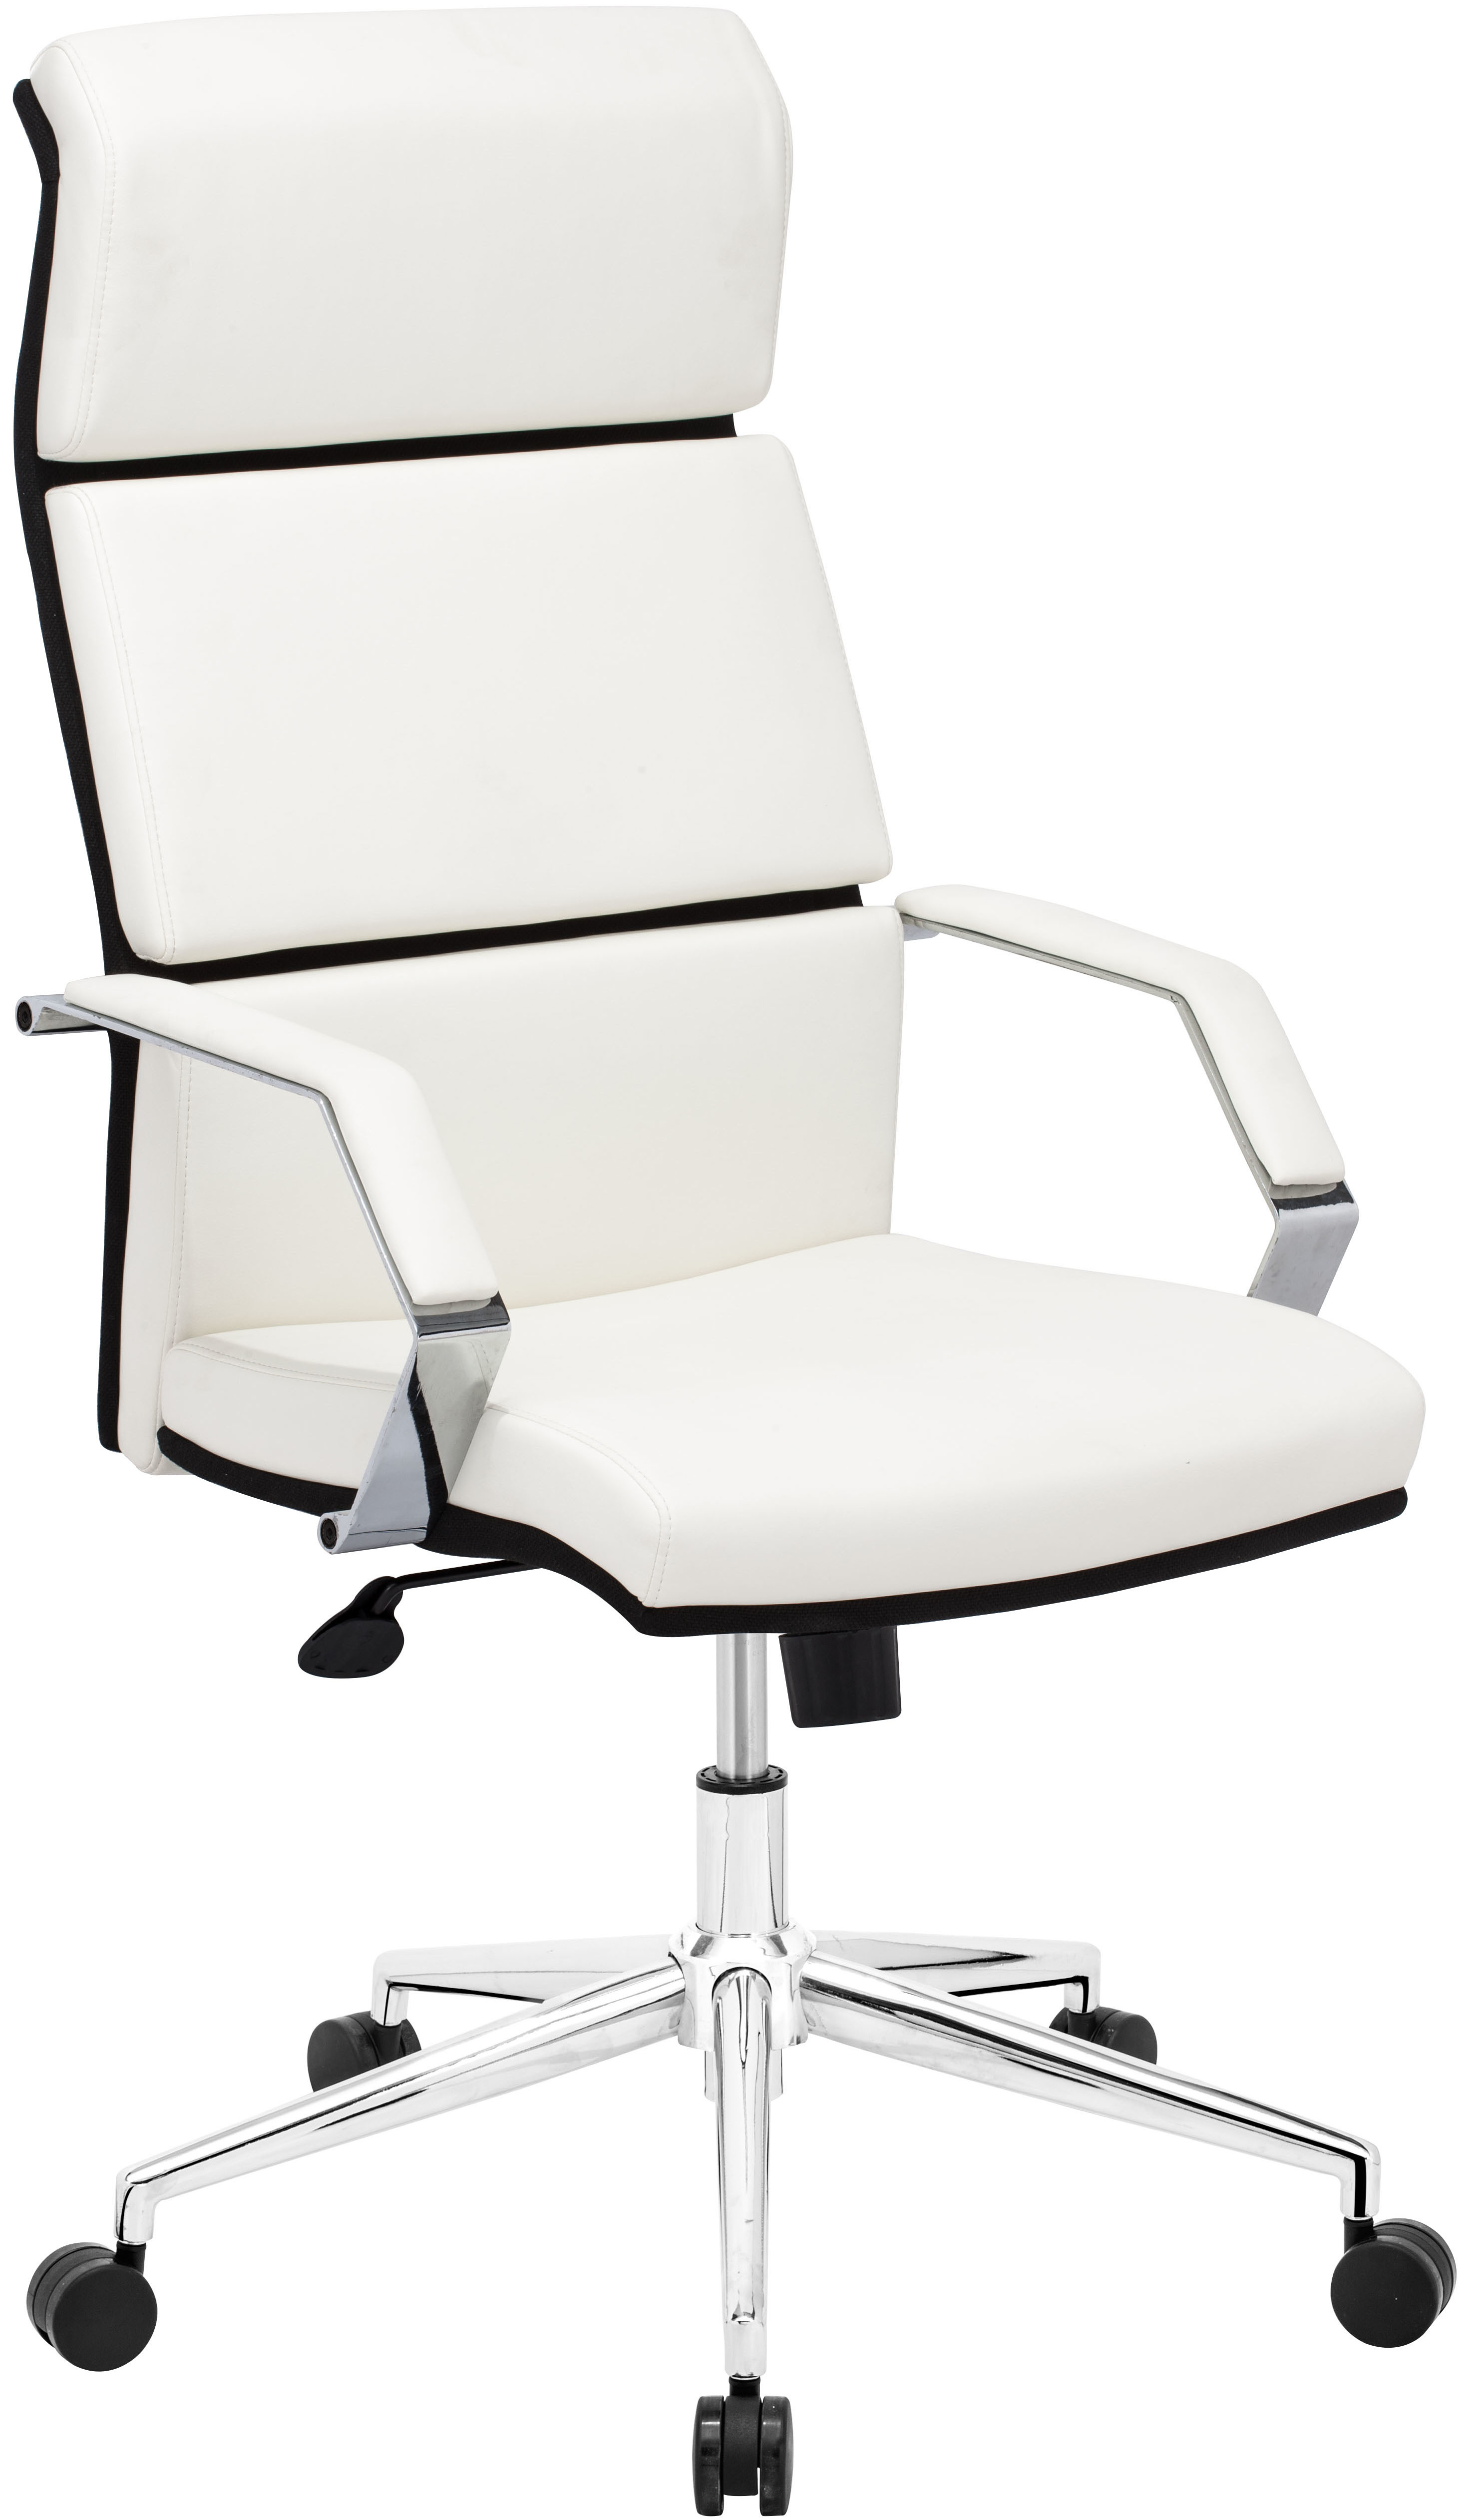 ergonomic chair pros plastic chairs and tables for kids lider pro office white black or silver